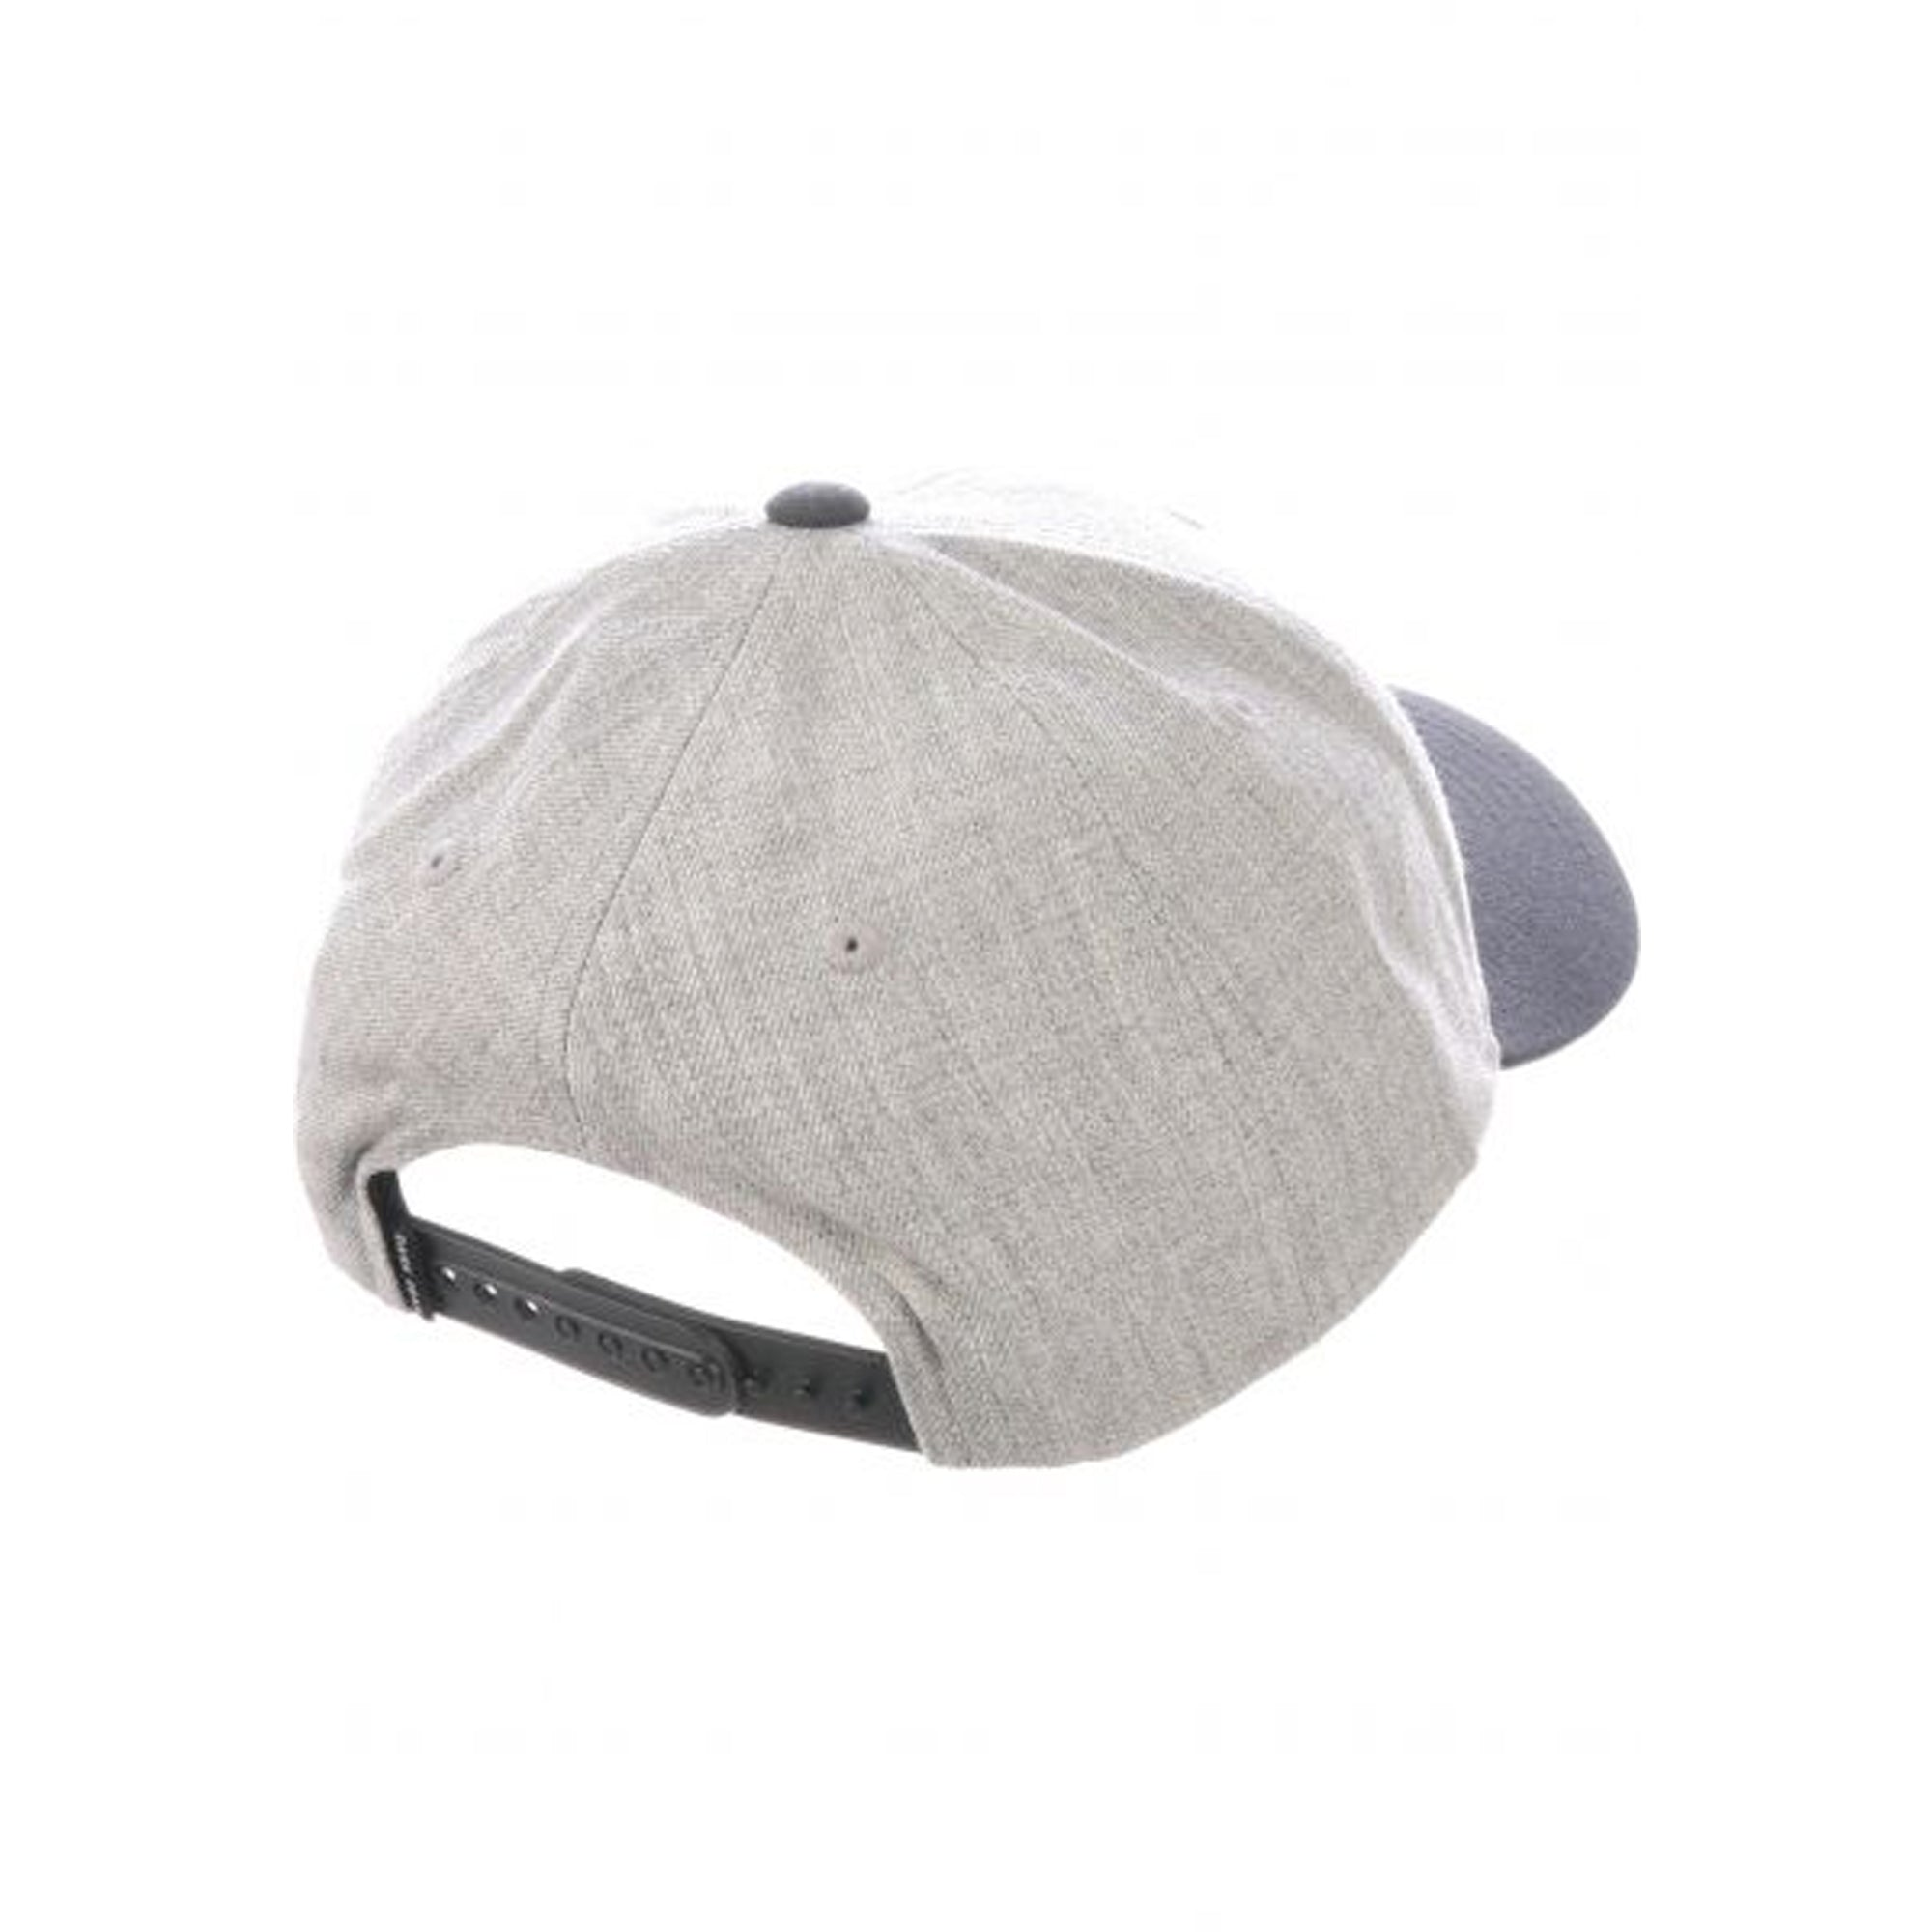 Dark Seas Melbourne Men's Hat